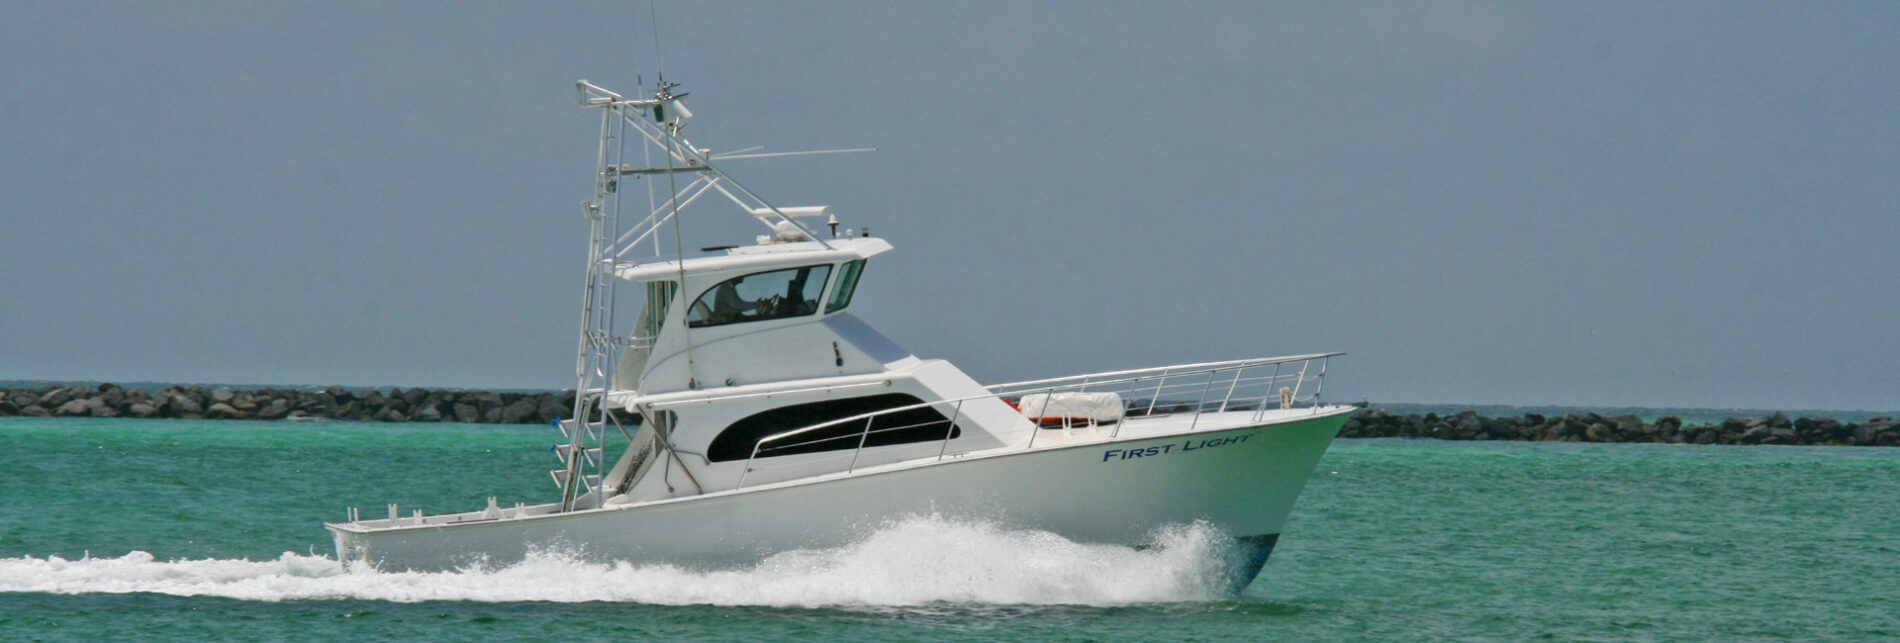 Destin florida deep sea fishing charters trips charter for Fishing destin fl